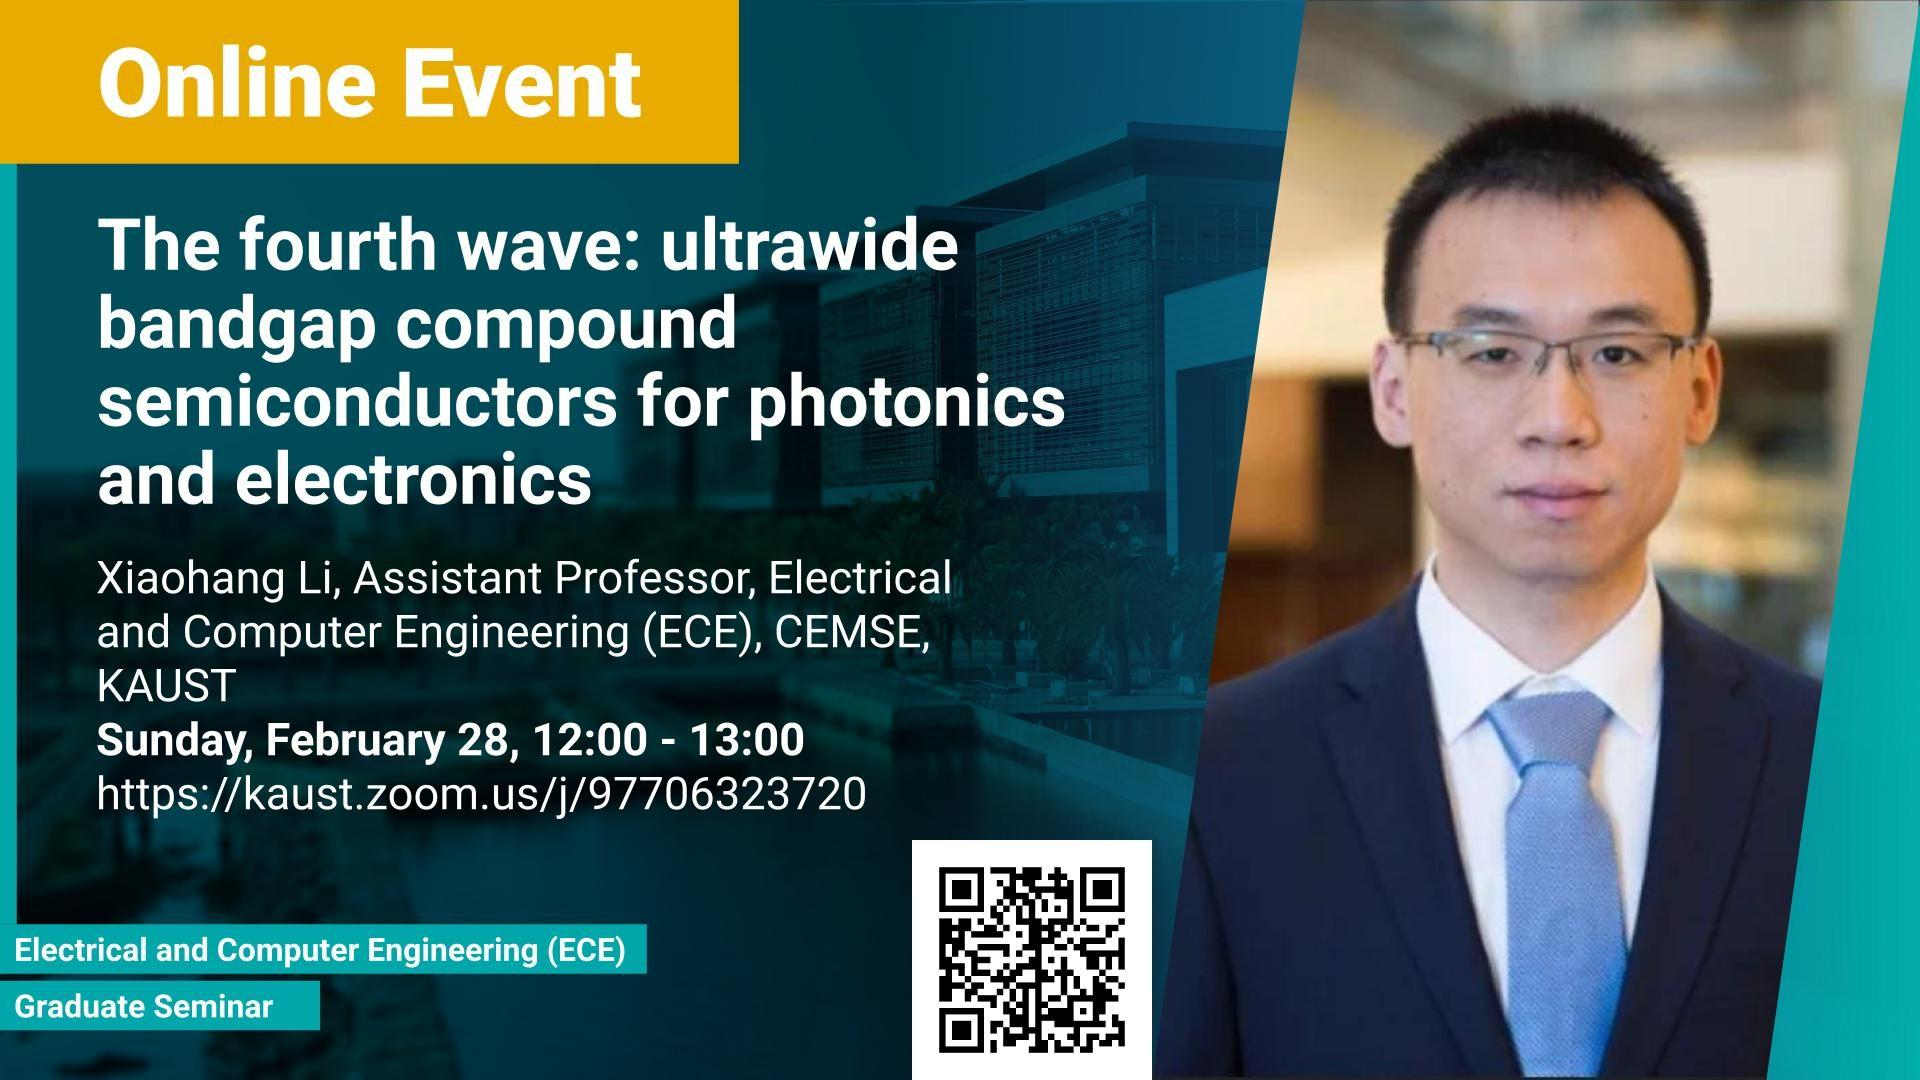 KAUST-CEMSE-ECE-Graduate-Seminar-The fourth-wave-ultrawide-bandgap-compound-semiconductors-for-photonics-and-electronics-Xiaohang-Li.jpg